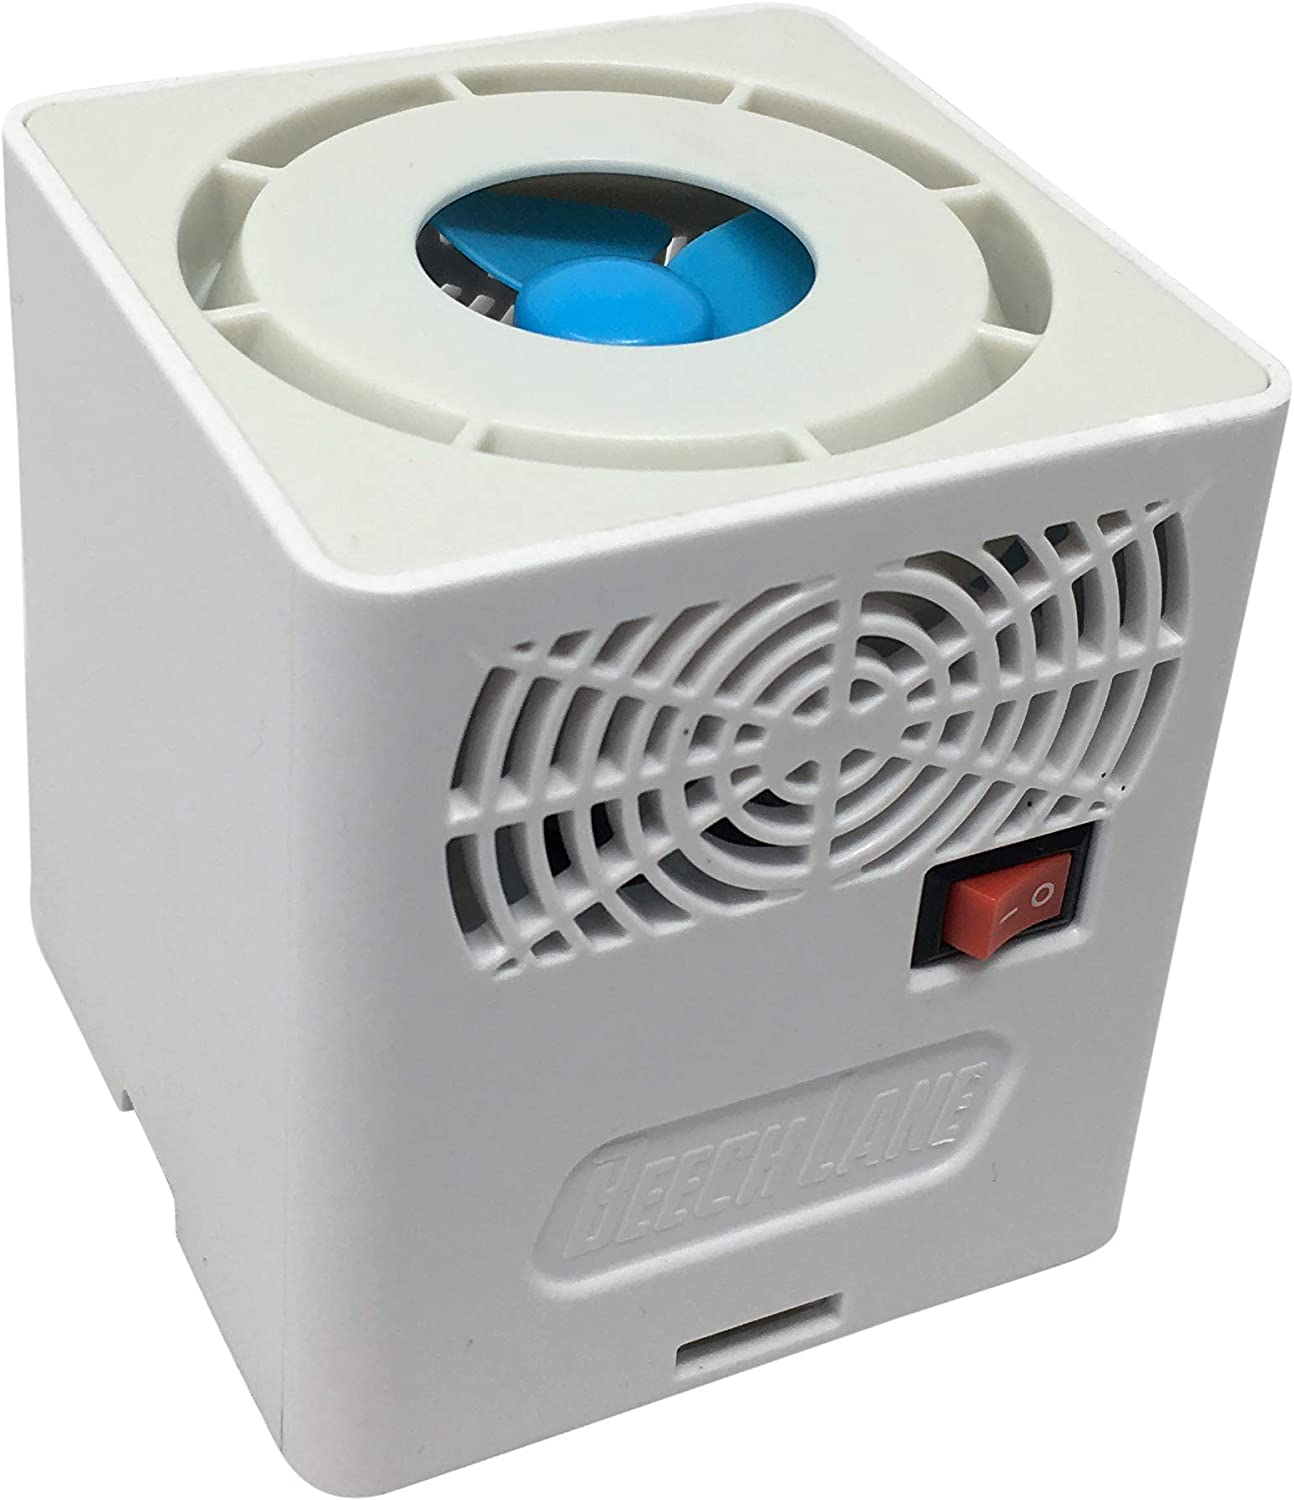 Easy On and Off Switch High Power 3,000 RPM Motor Beech Lane RV Fridge Fan Durable Construction